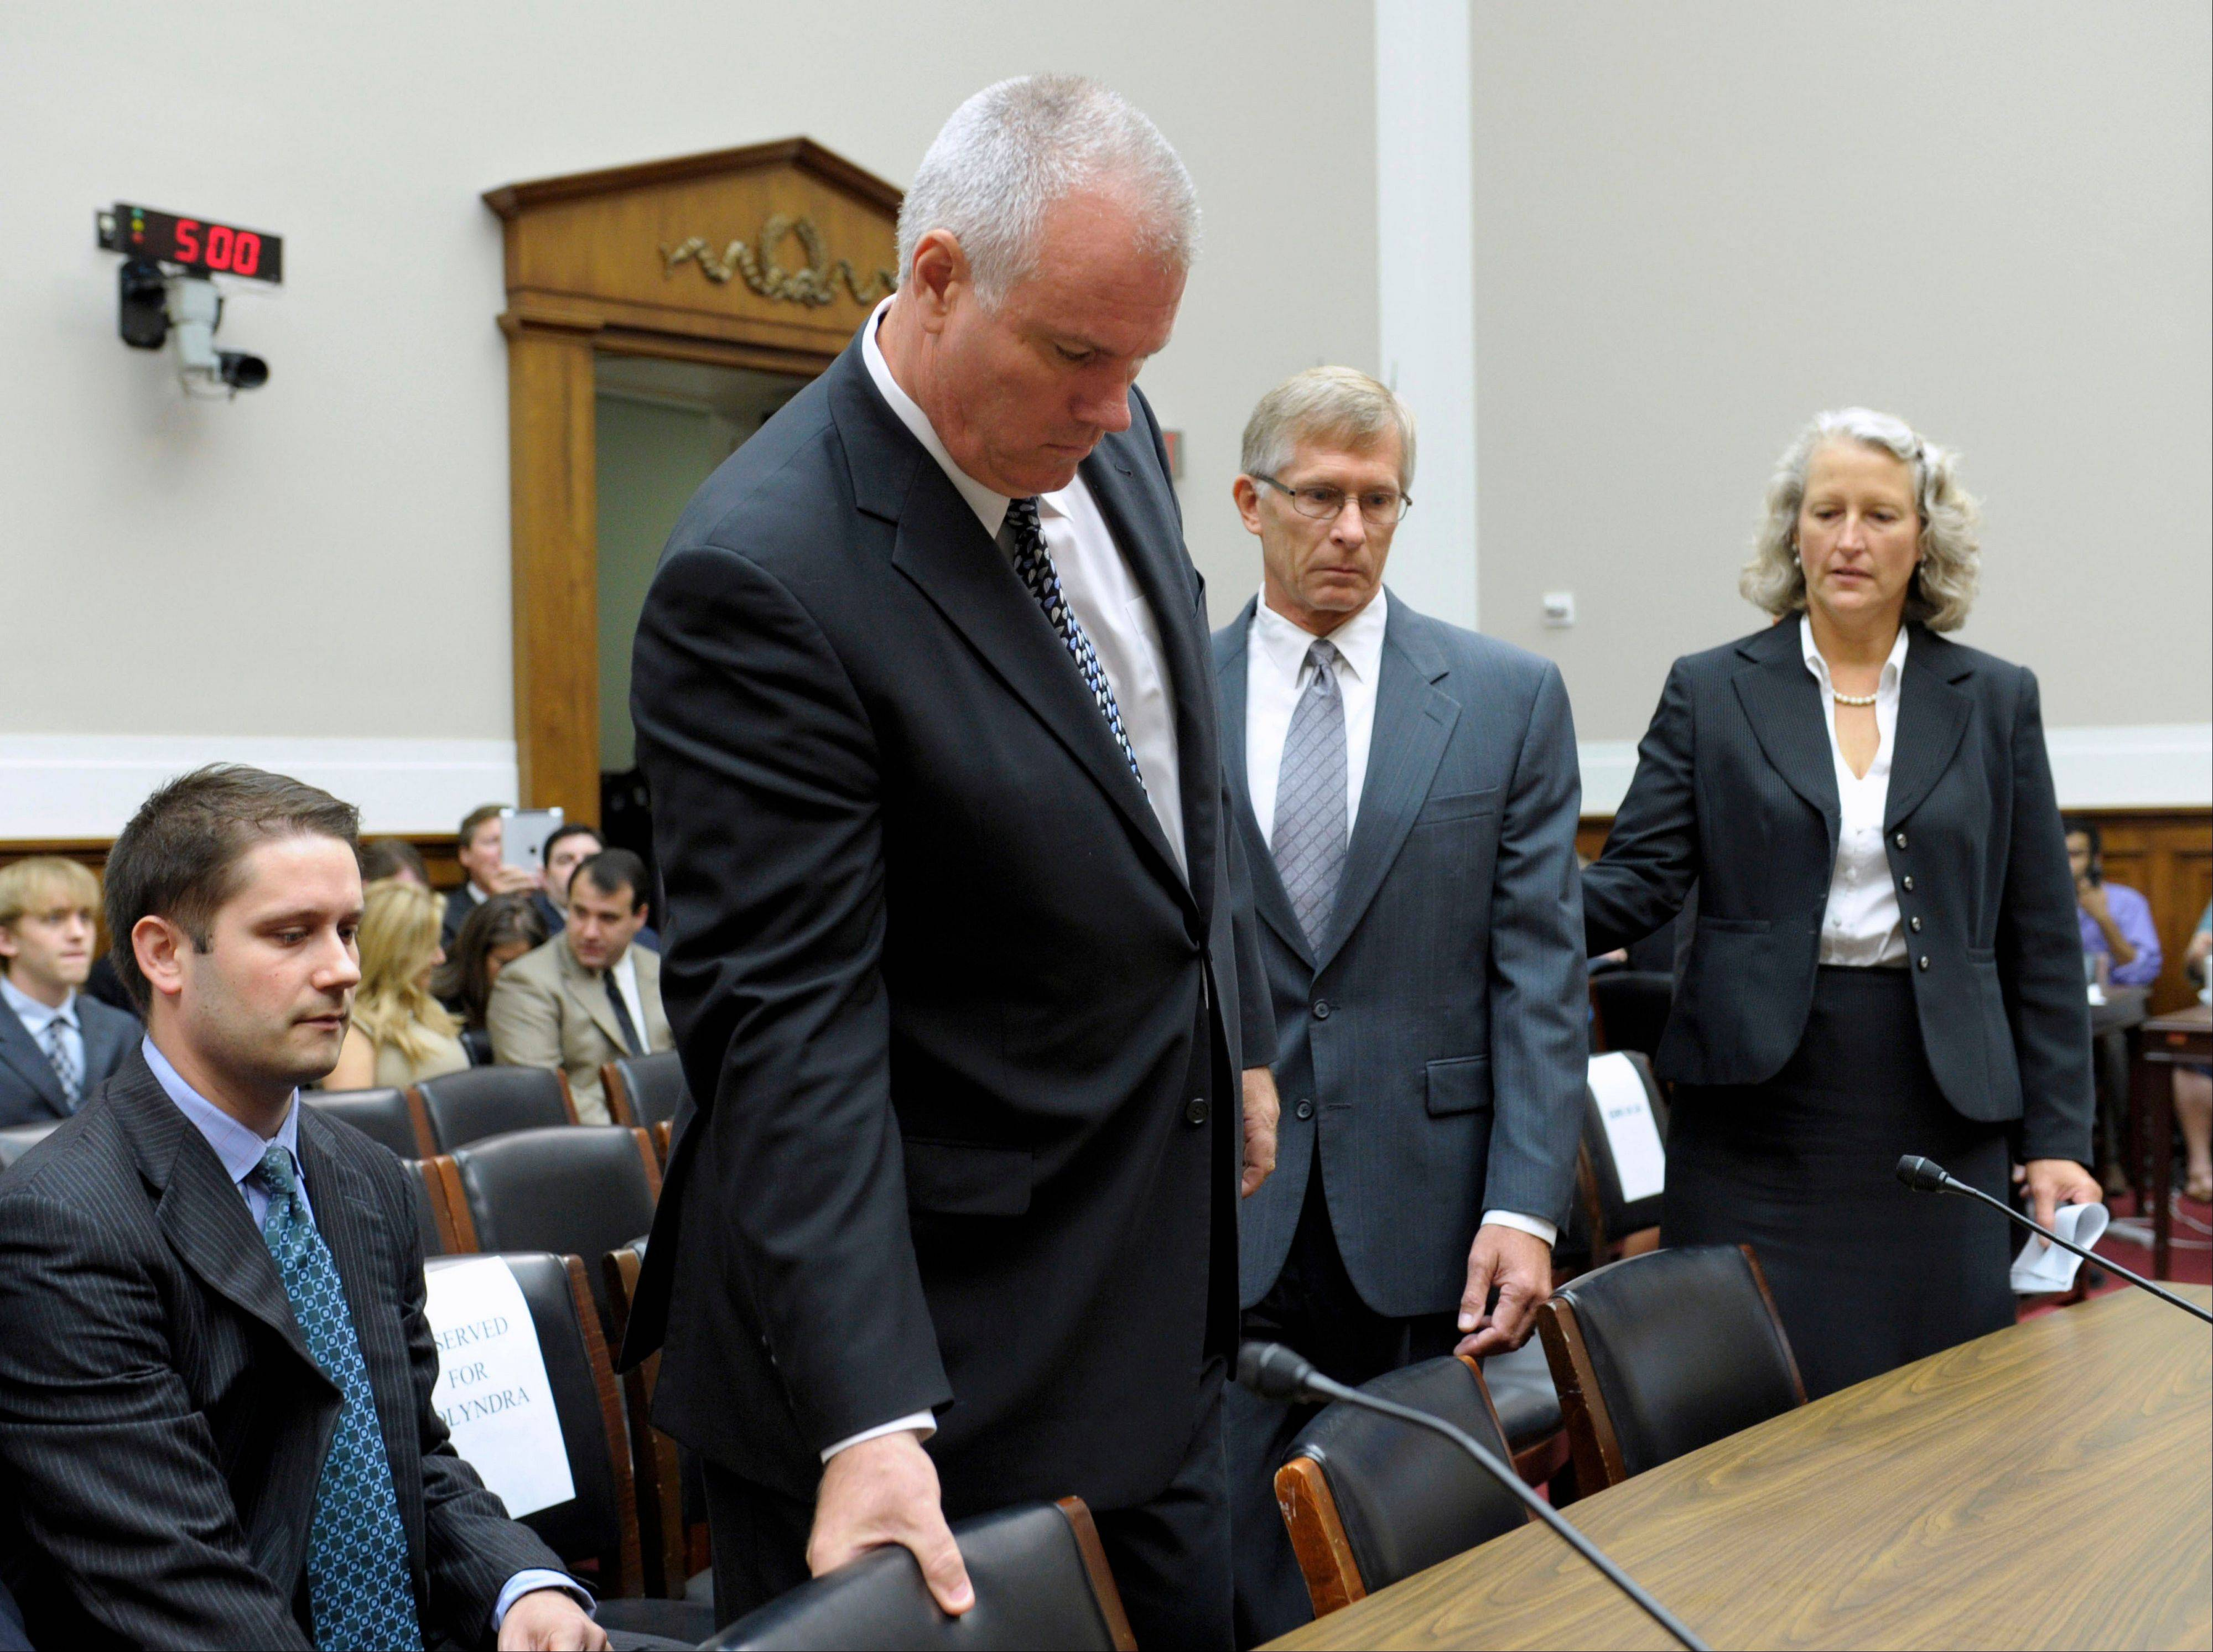 Solyndra CEO Brian Harrison, second from left, and Chief Financial Officer Bill Stover, second from right, arrive Friday on Capitol Hill in Washington.